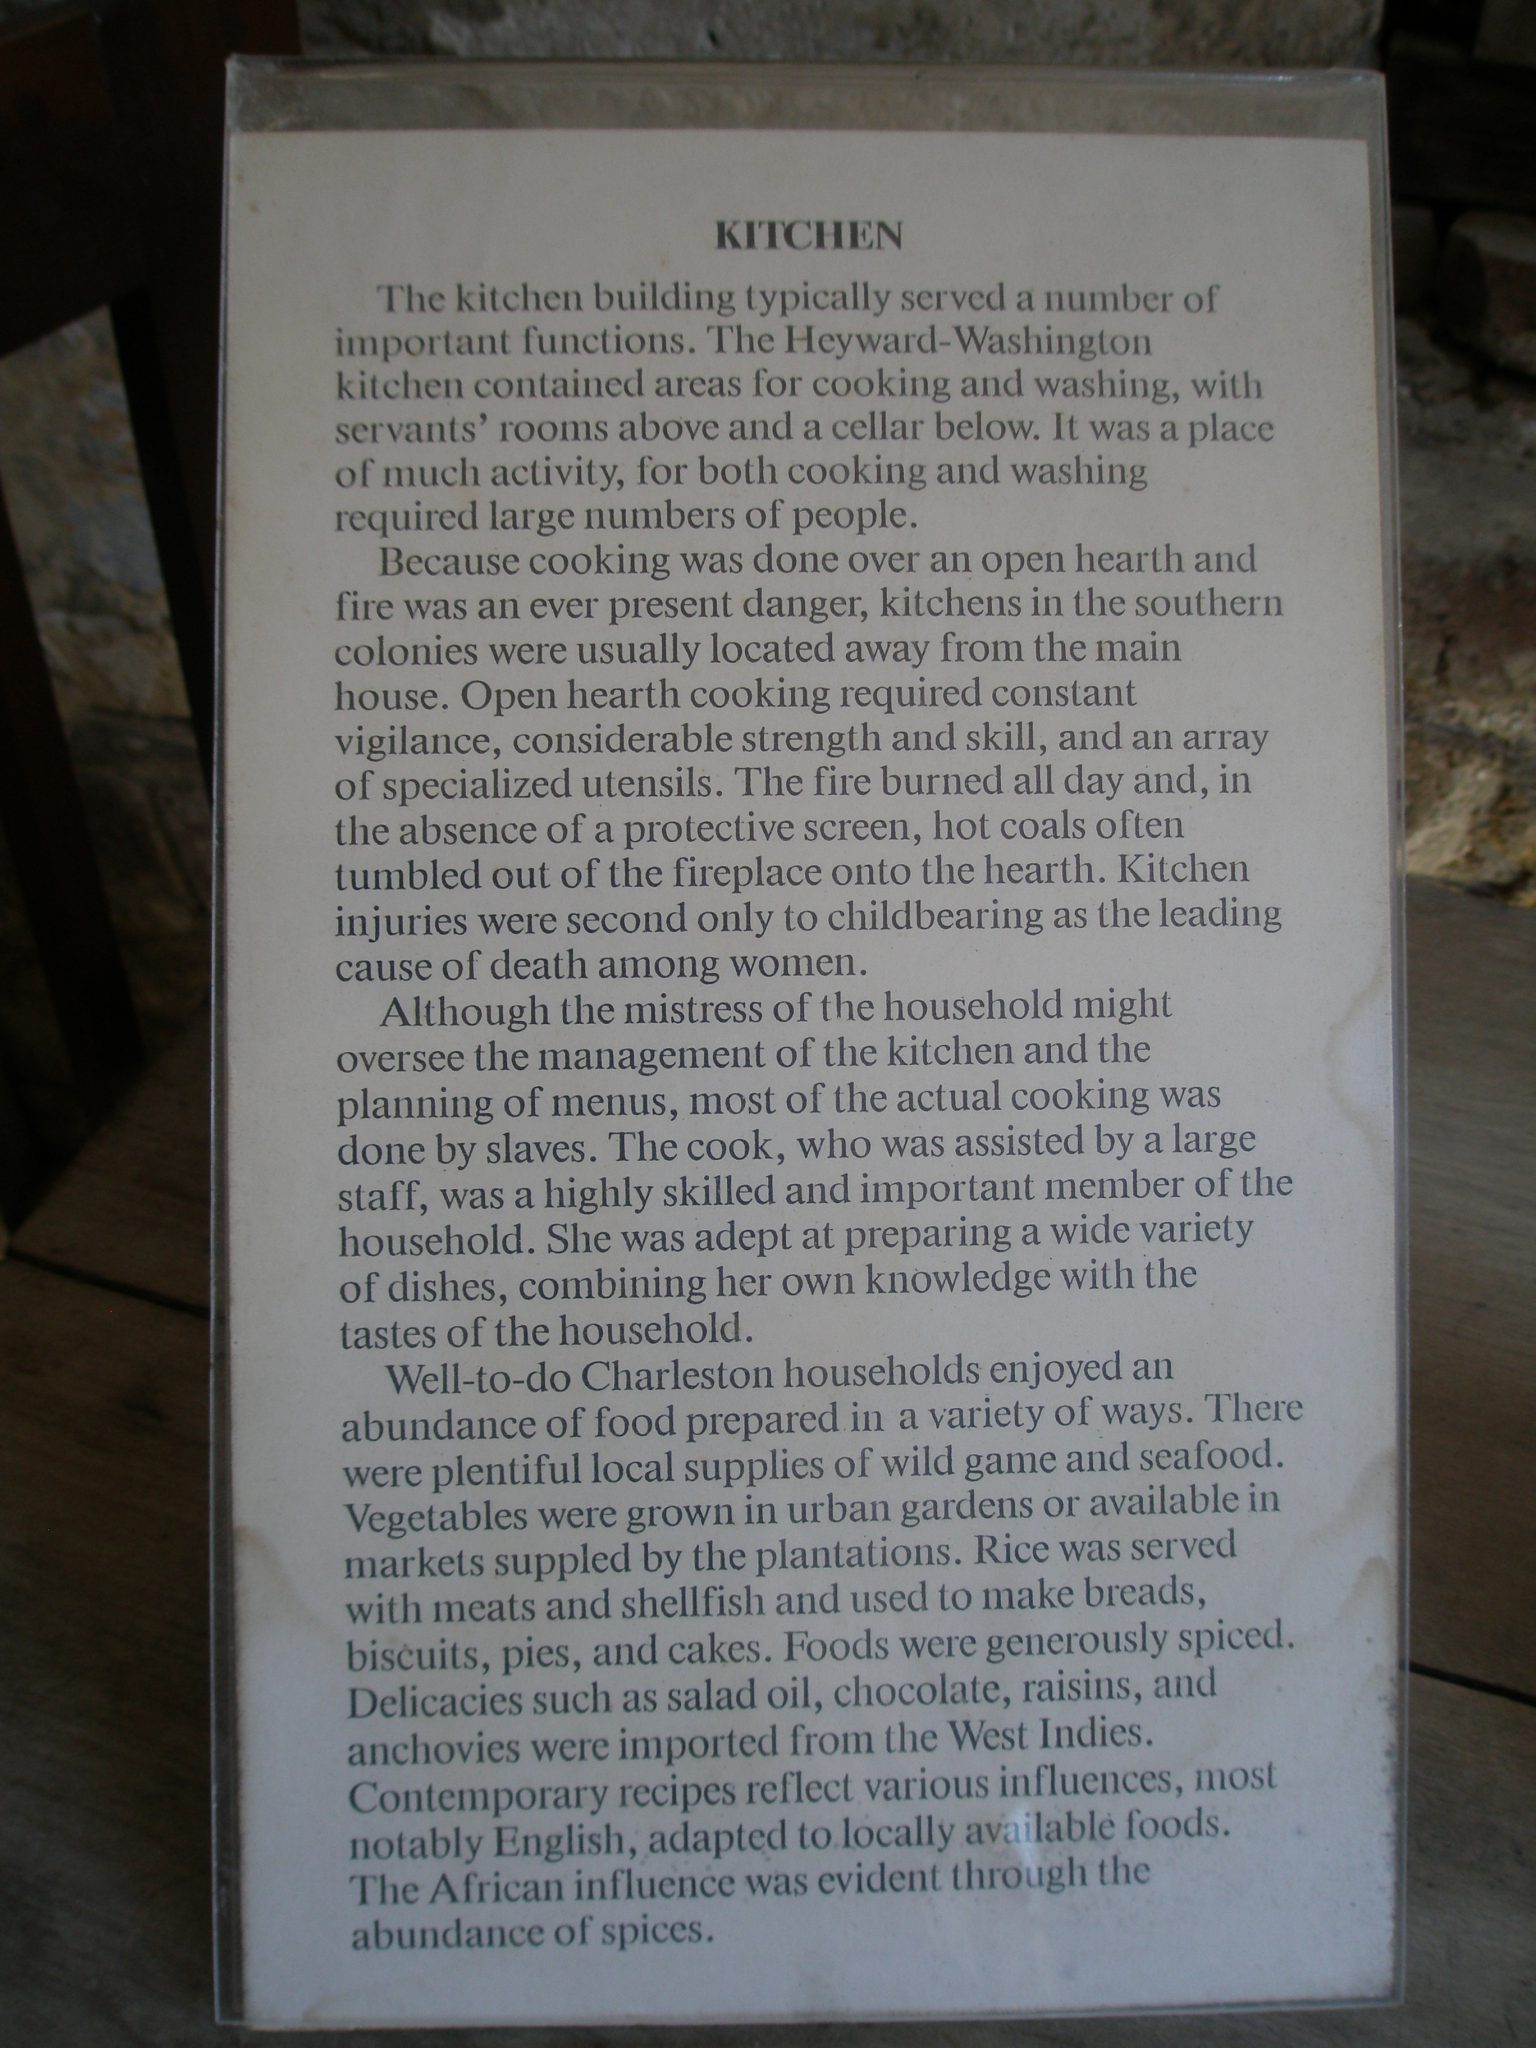 Explanatory notes about the Kitchen